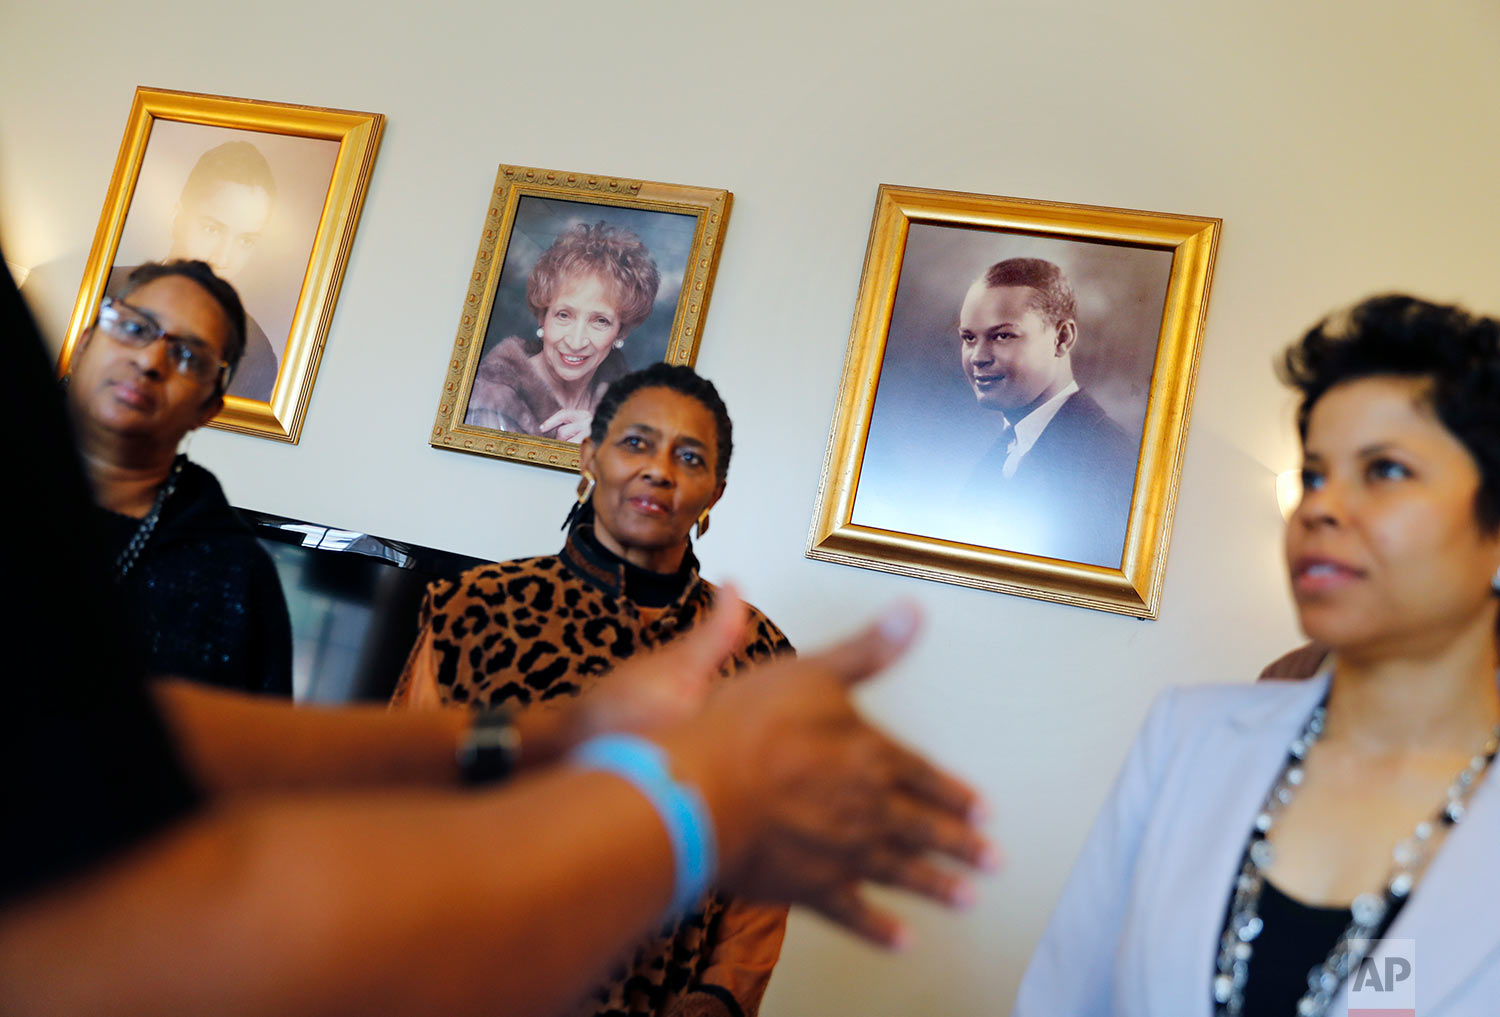 A portrait of Dan Young, who ran the county's only black funeral home that tended to the bodies of the 1946 lynching victims, hangs on the wall of the business now run by his granddaughter Dana Young Levett, right, as she meets with fellow Moore's Ford Movement members Hattie Lawson, center, Kathy Arnold, left, and Tyrone Brooks, in Monroe, Ga., Thursday, Feb. 22, 2018. The group holds an annual march and reenactment of the lynching to raise public awareness that the case remains unsolved. (AP Photo/David Goldman)